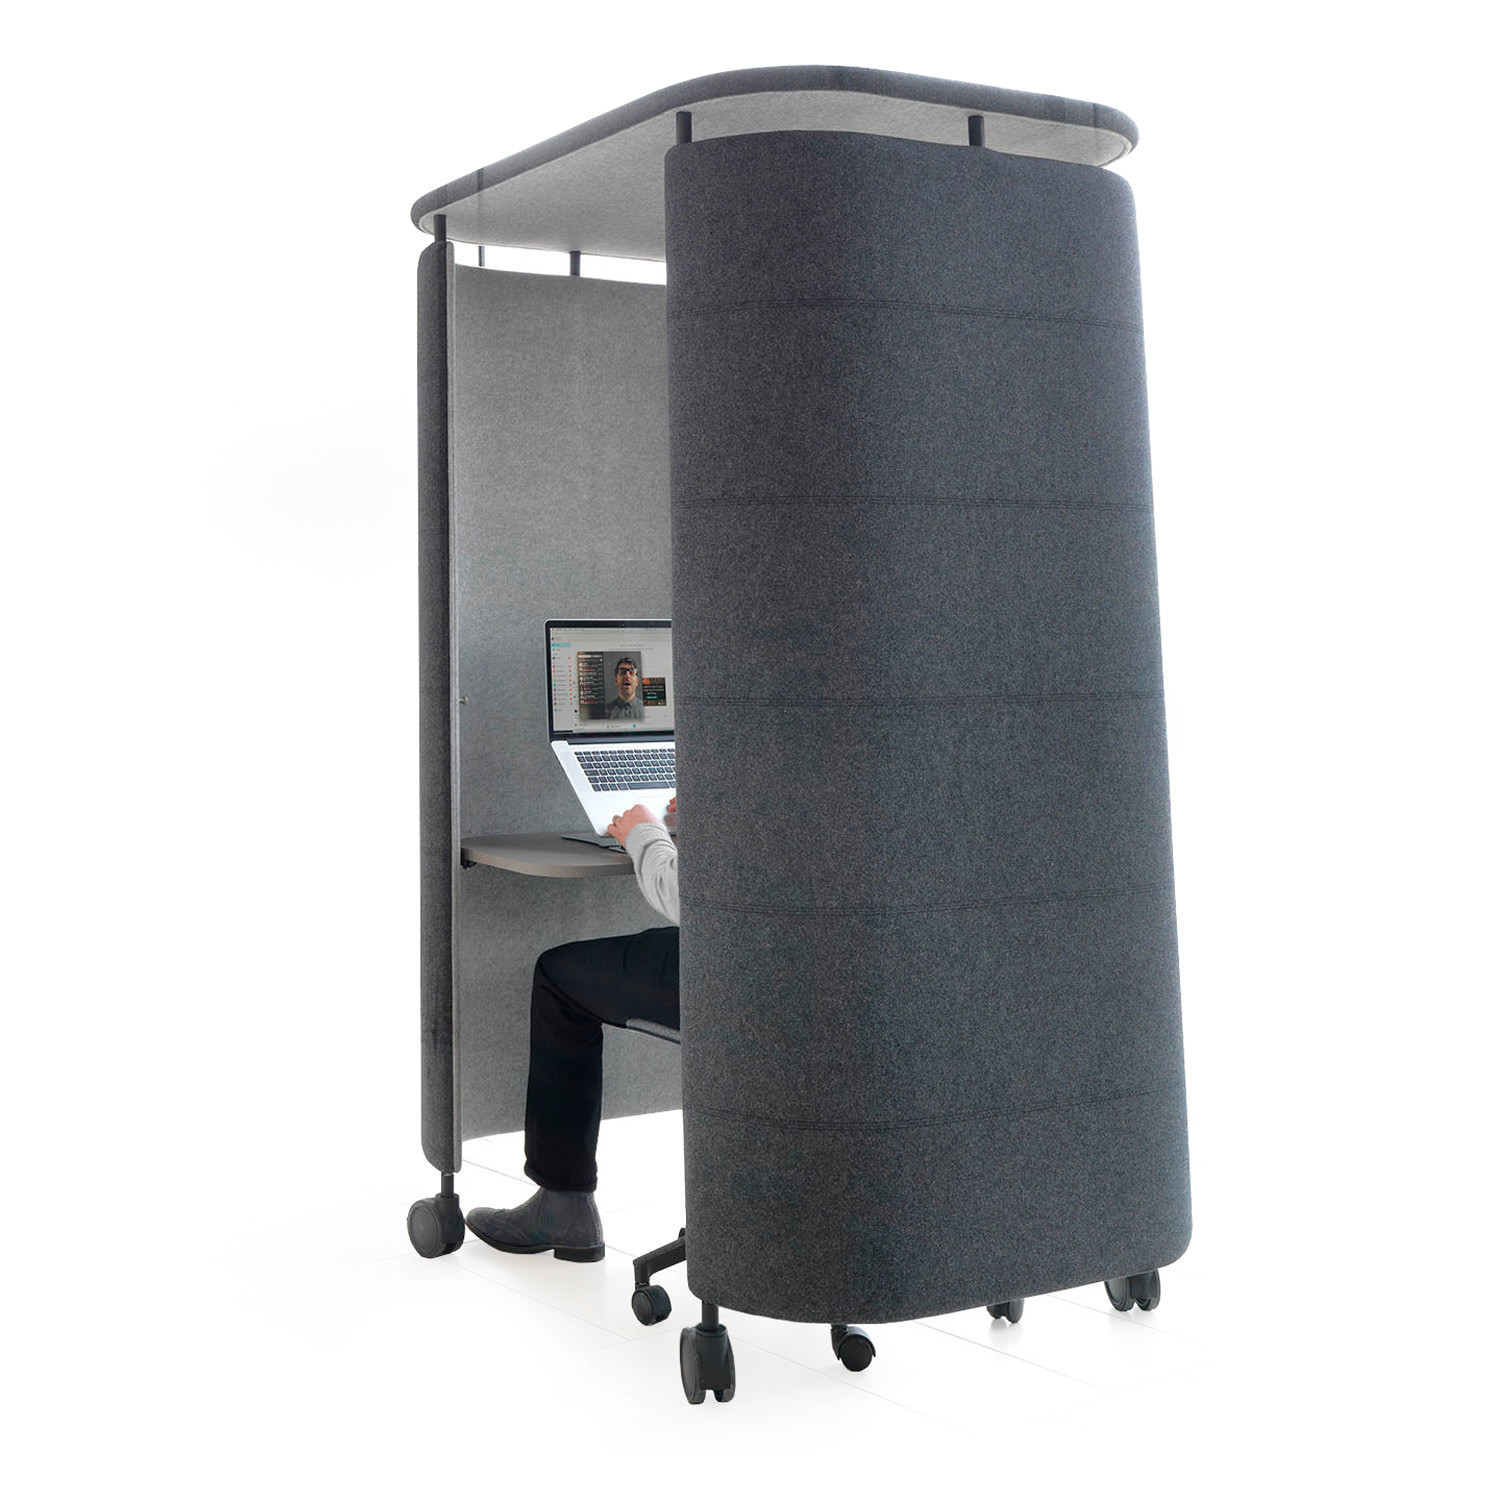 Innopod Privacy Workstation Acoustic Work Pod Apres